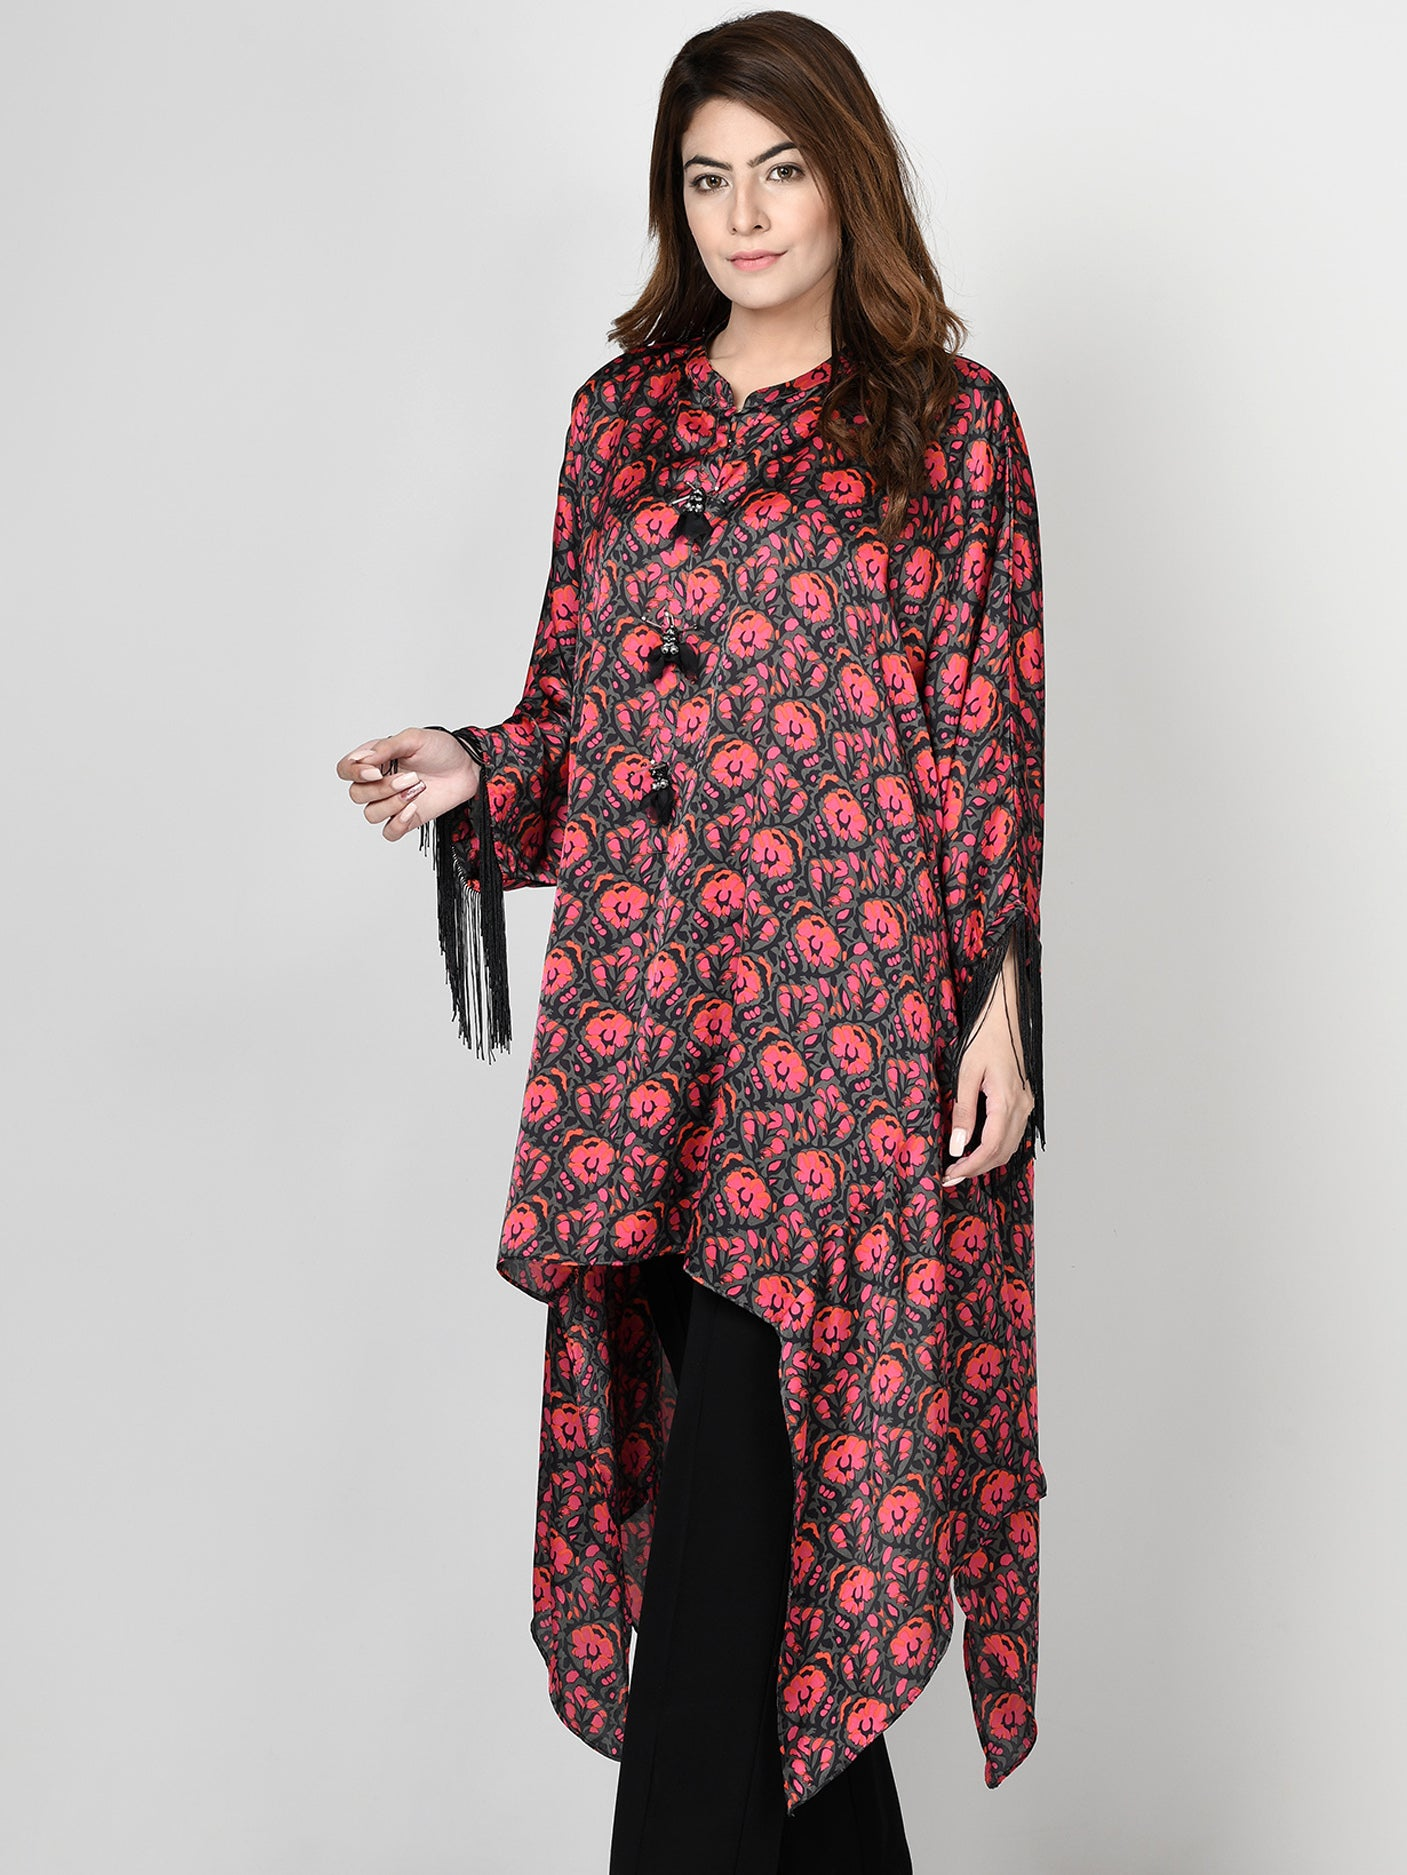 Limelight Online Embroidered Lawn Shirt P2343-SLL-PLM